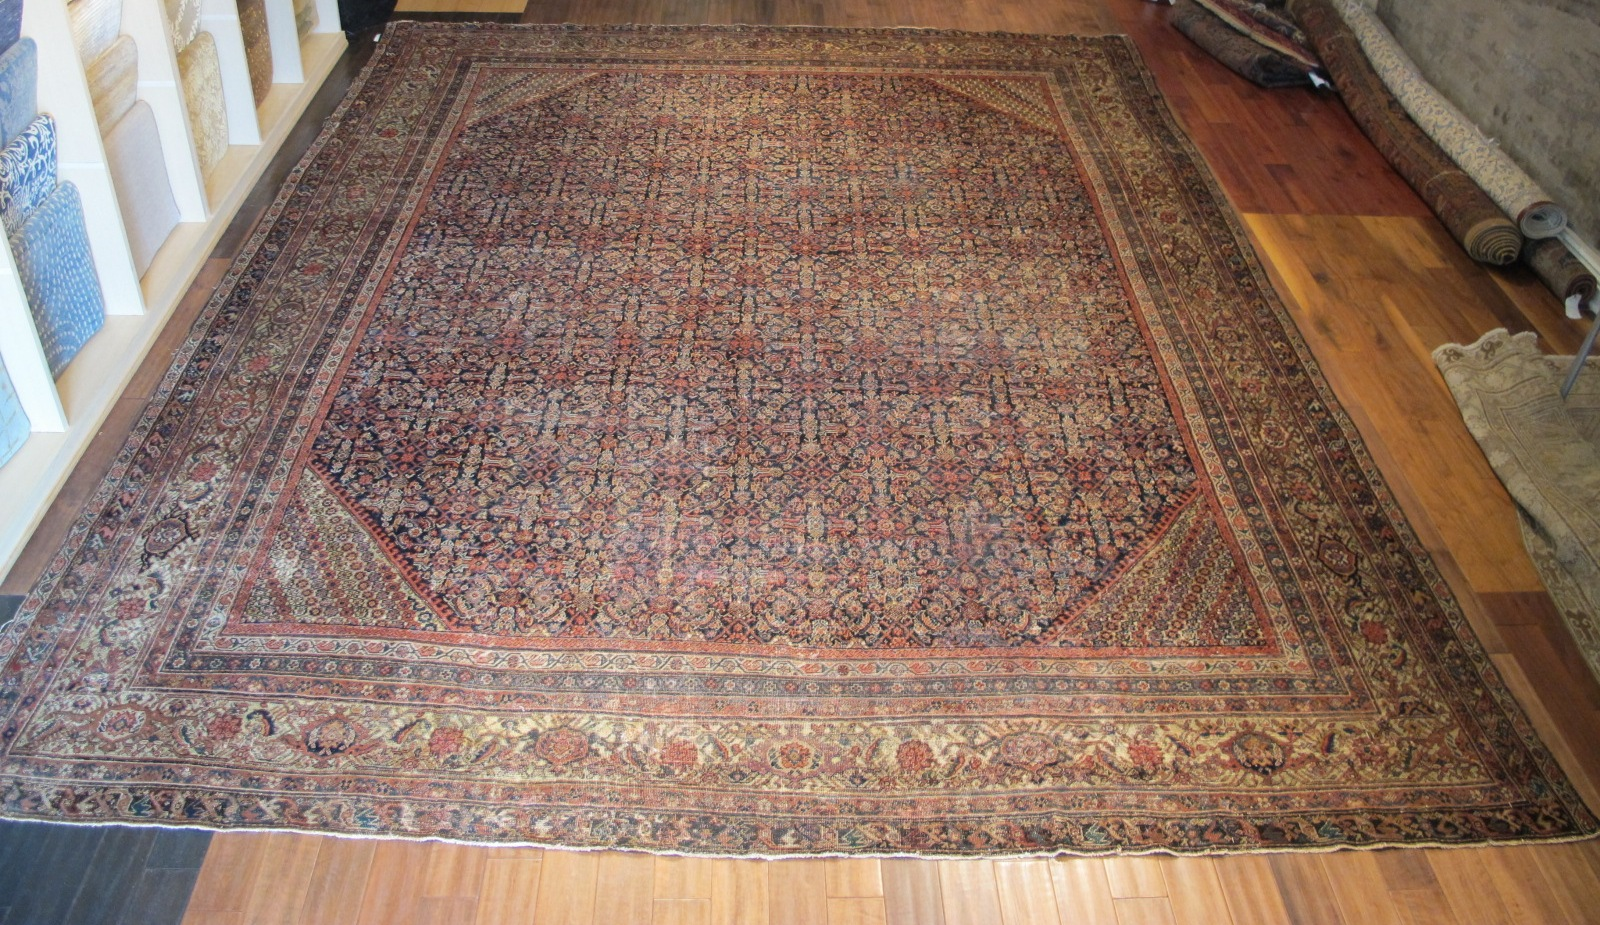 22329 antique persian mahal rug 12,3x16,7